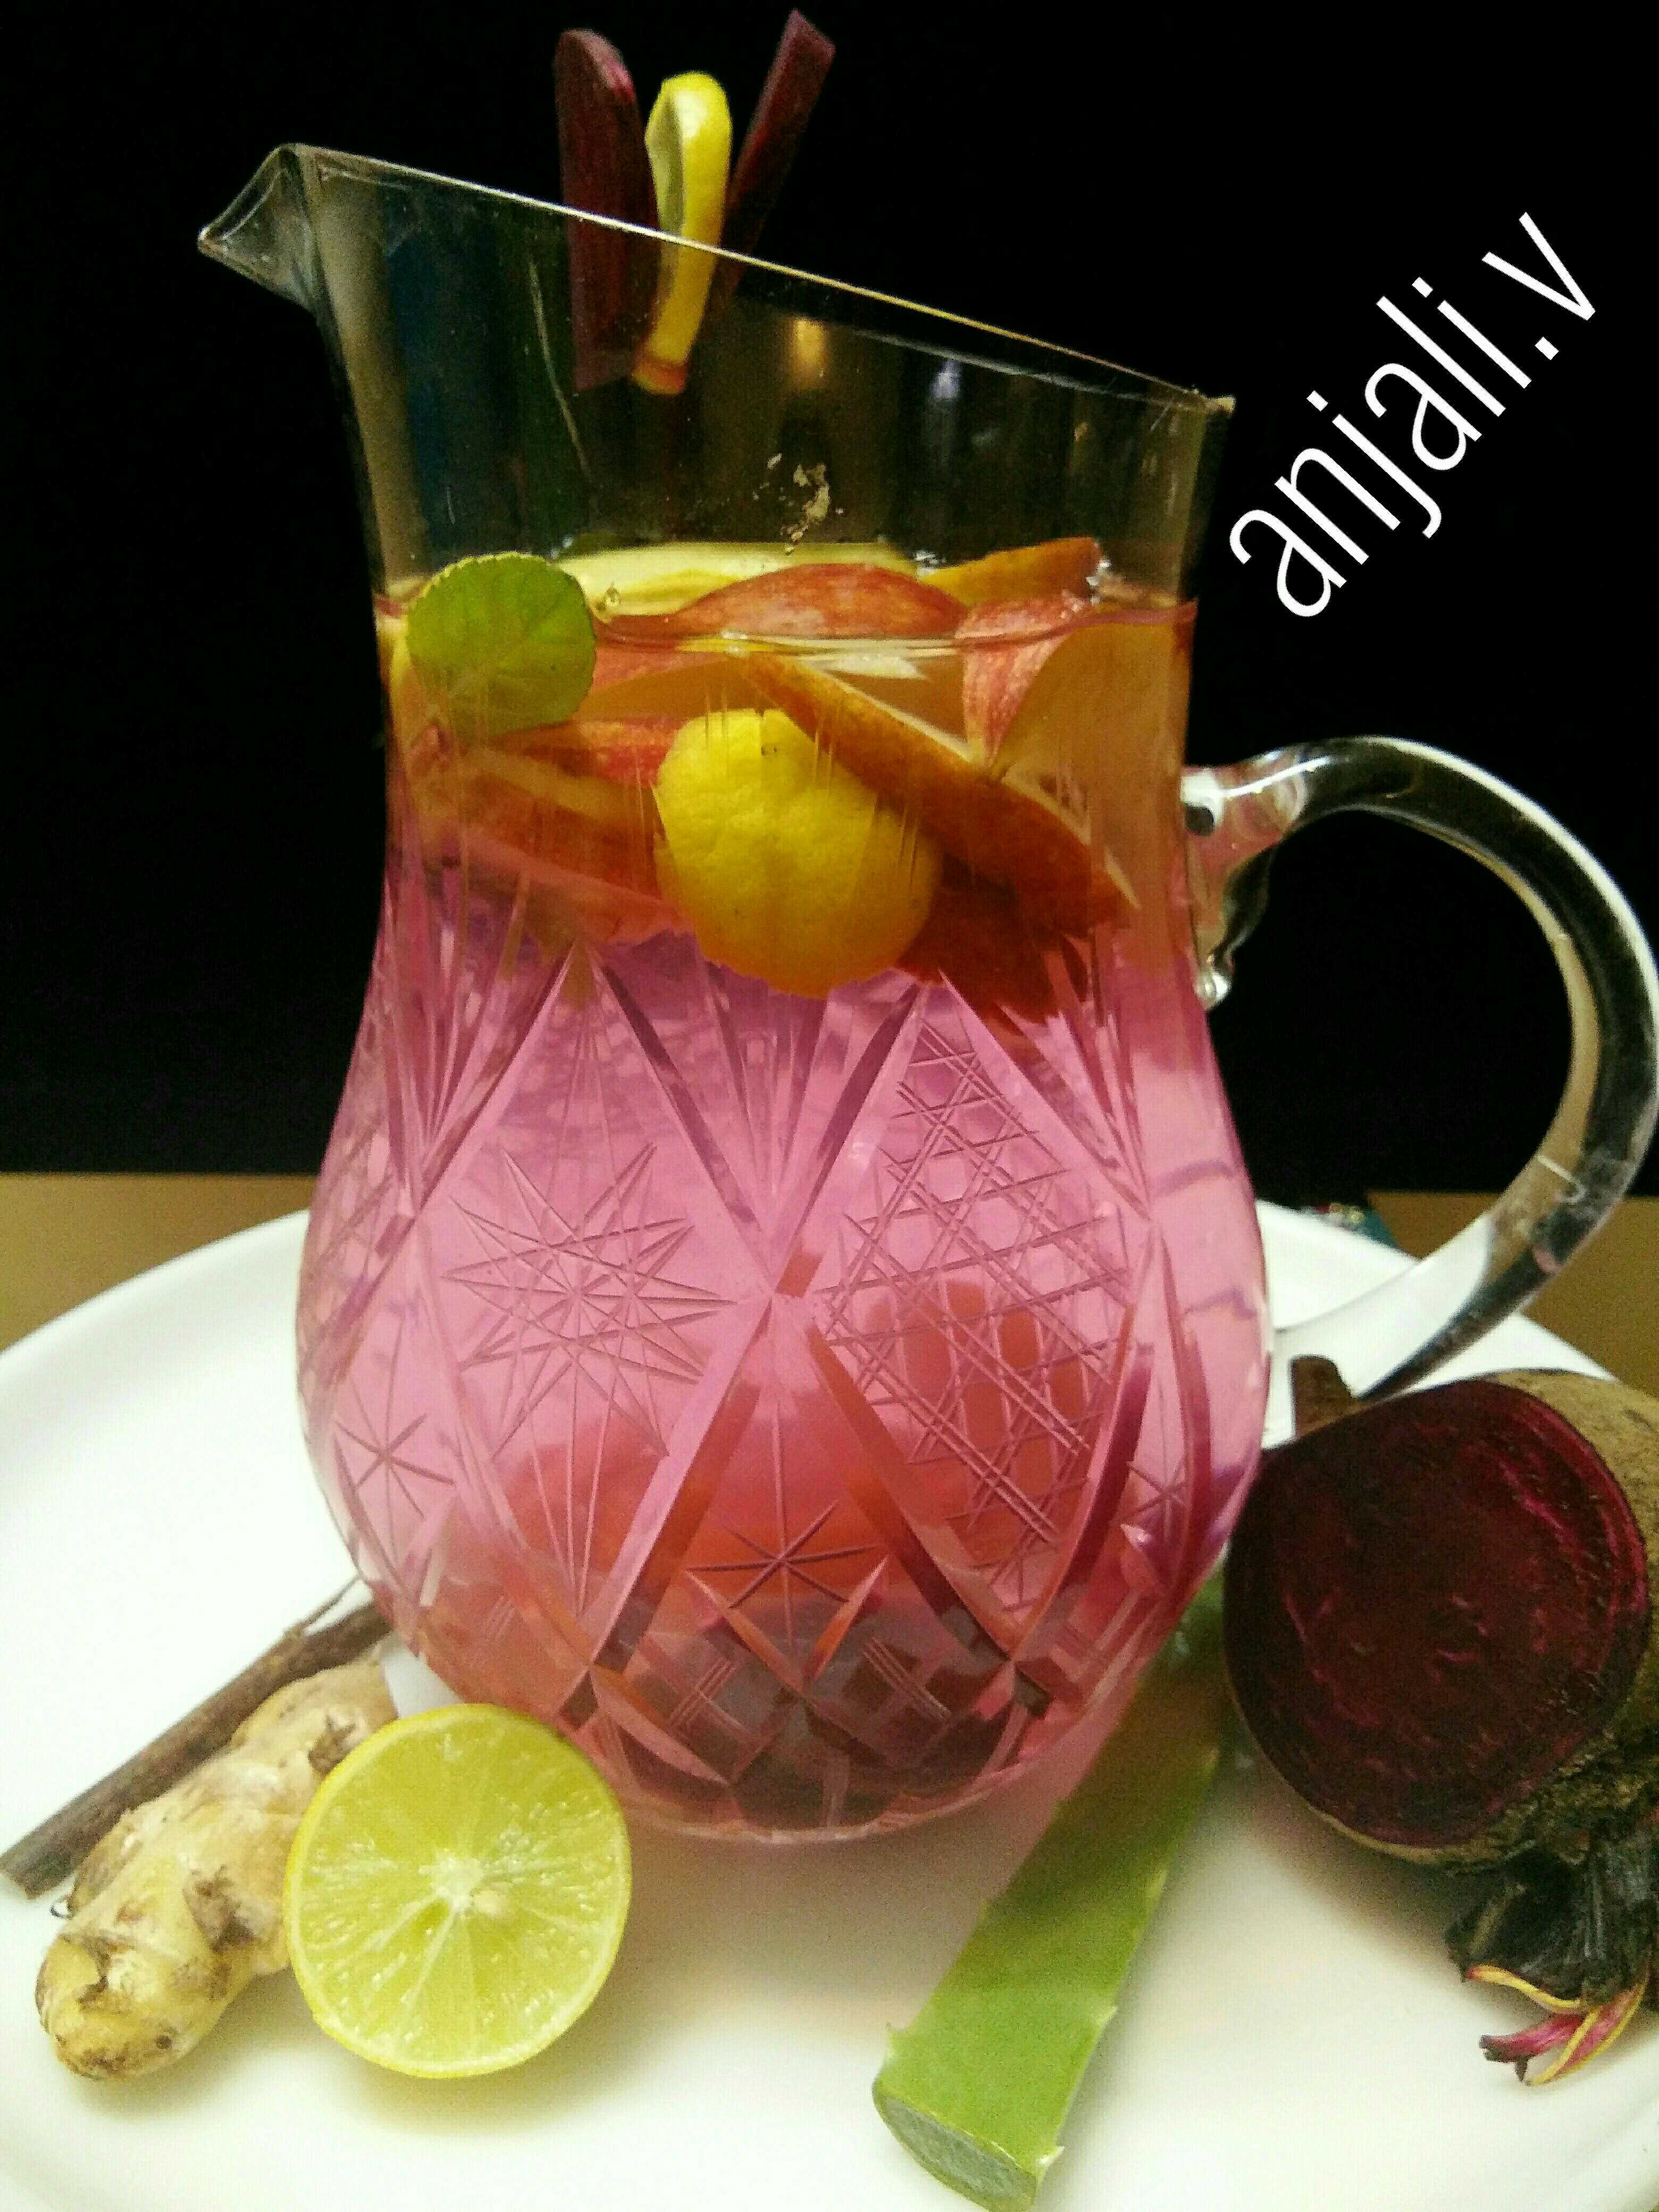 The Pink Beauty Liver Tonic